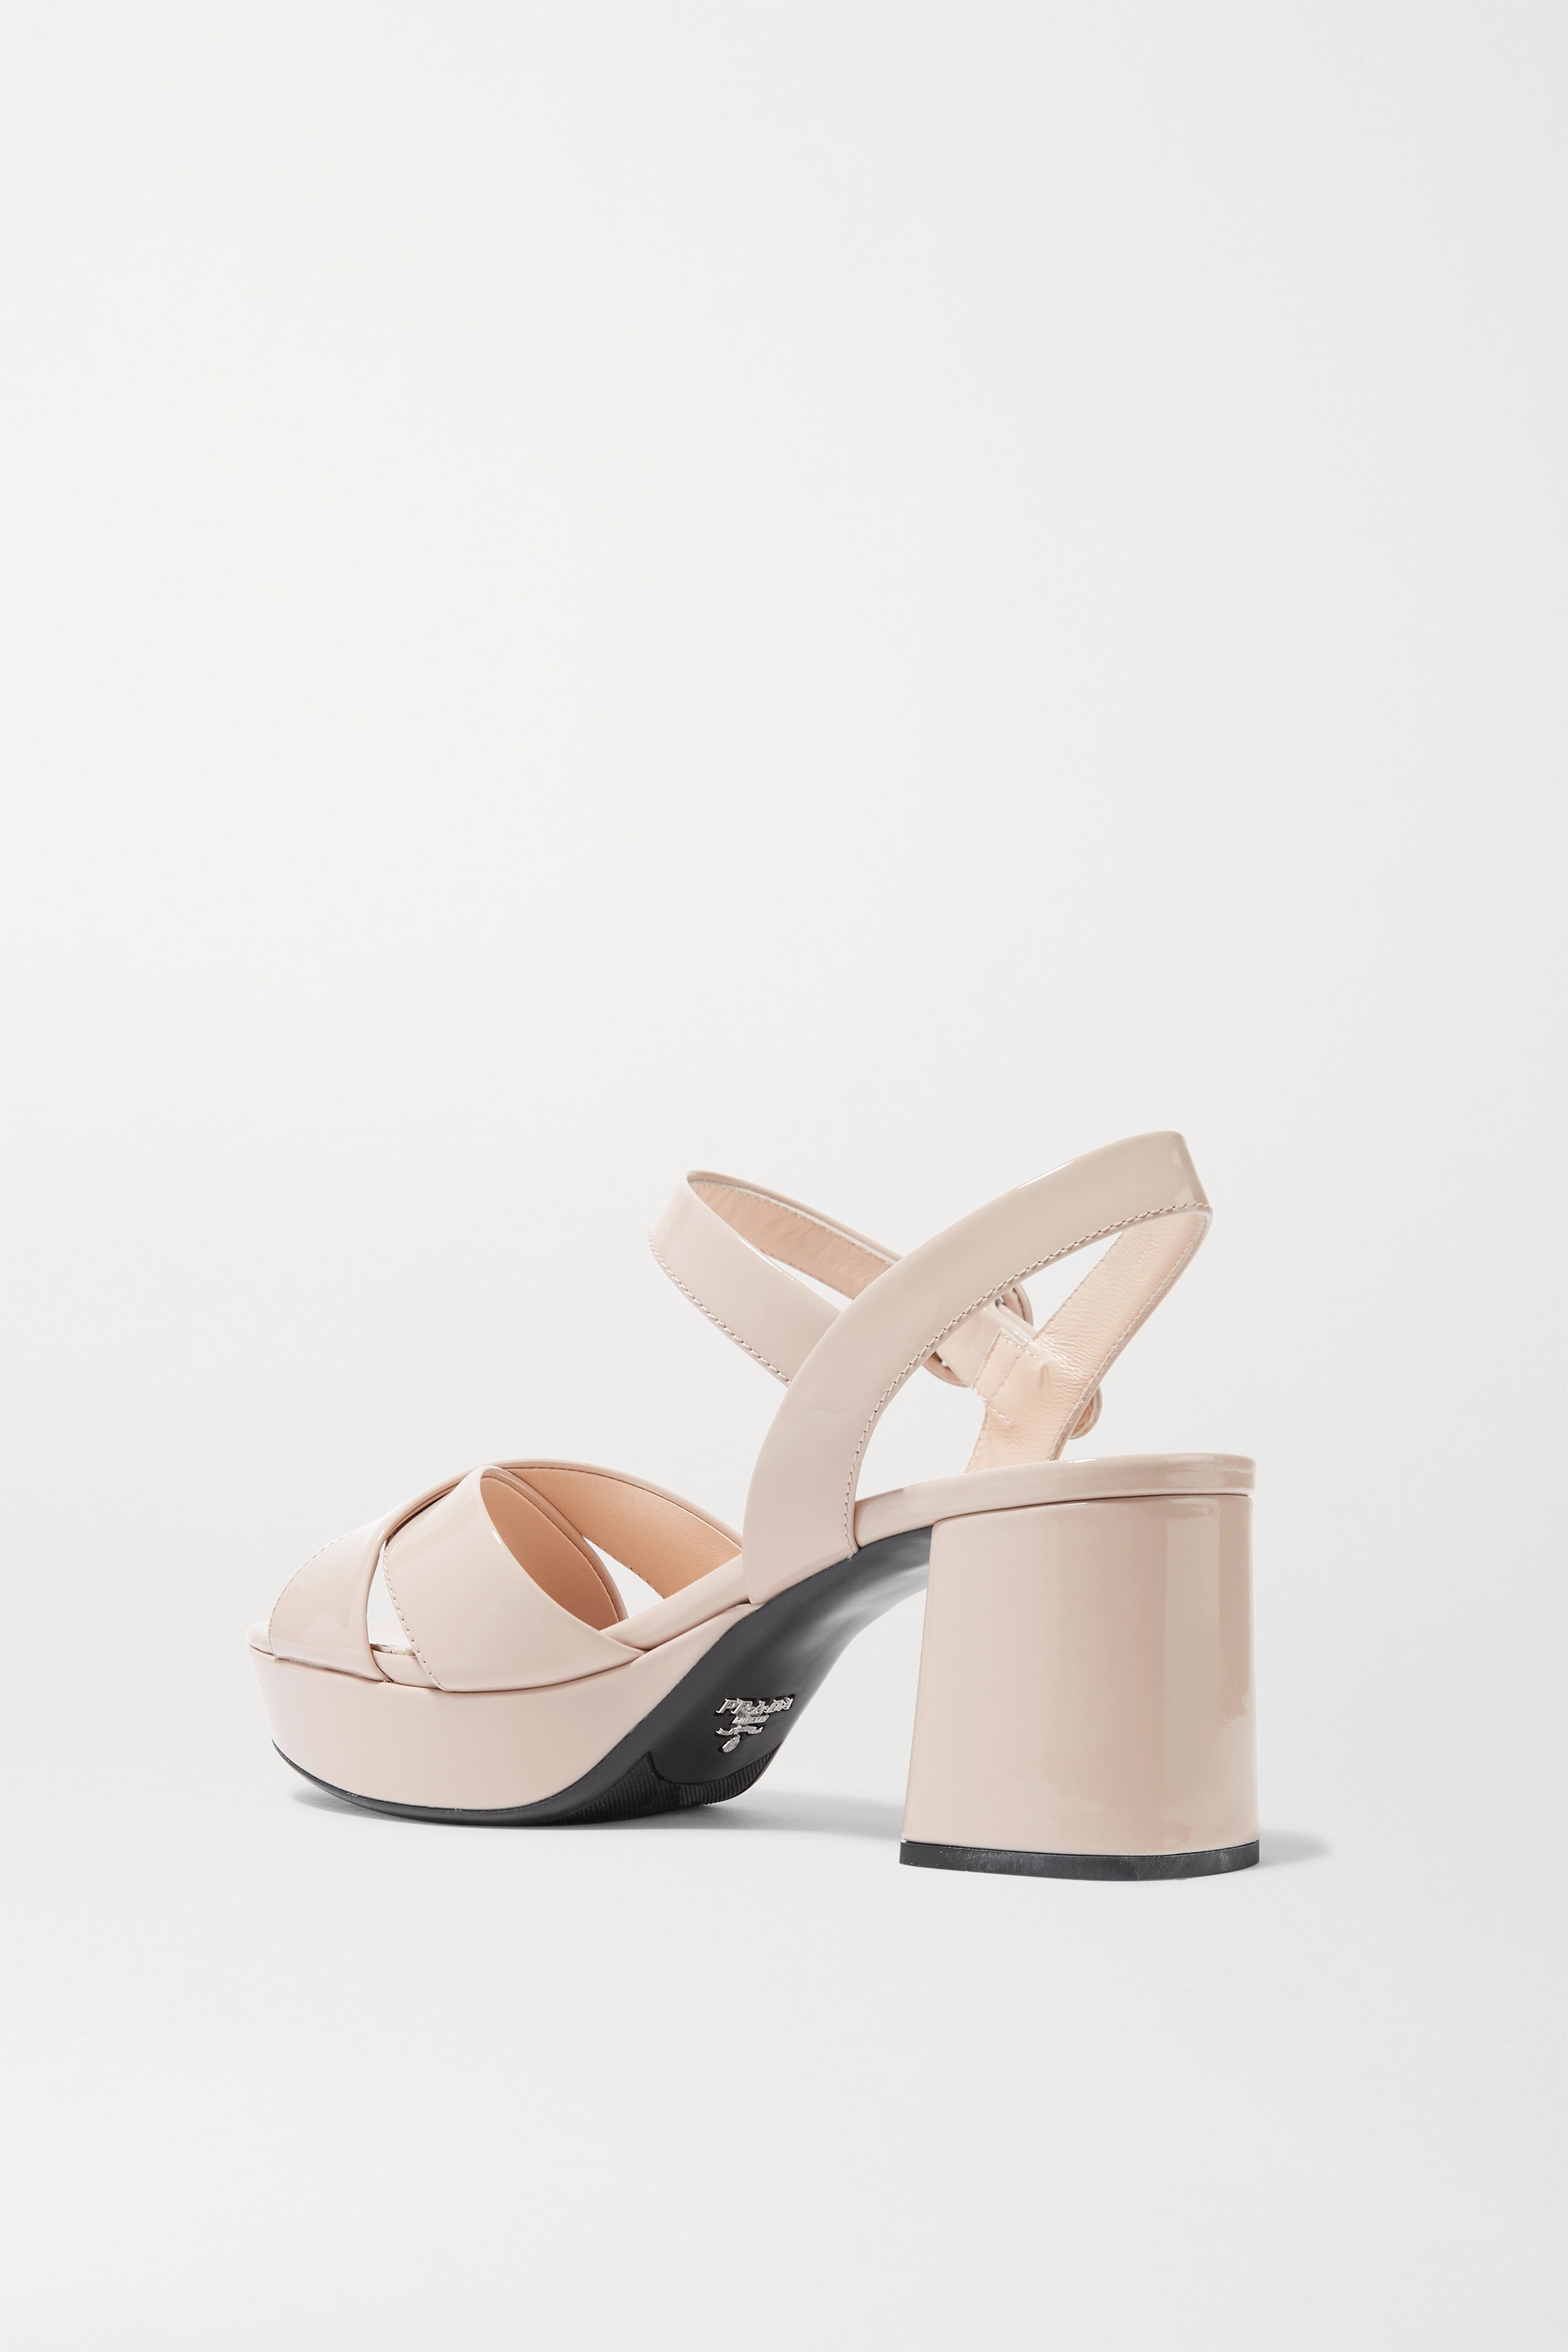 Prada 65 patent-leather platform sandals